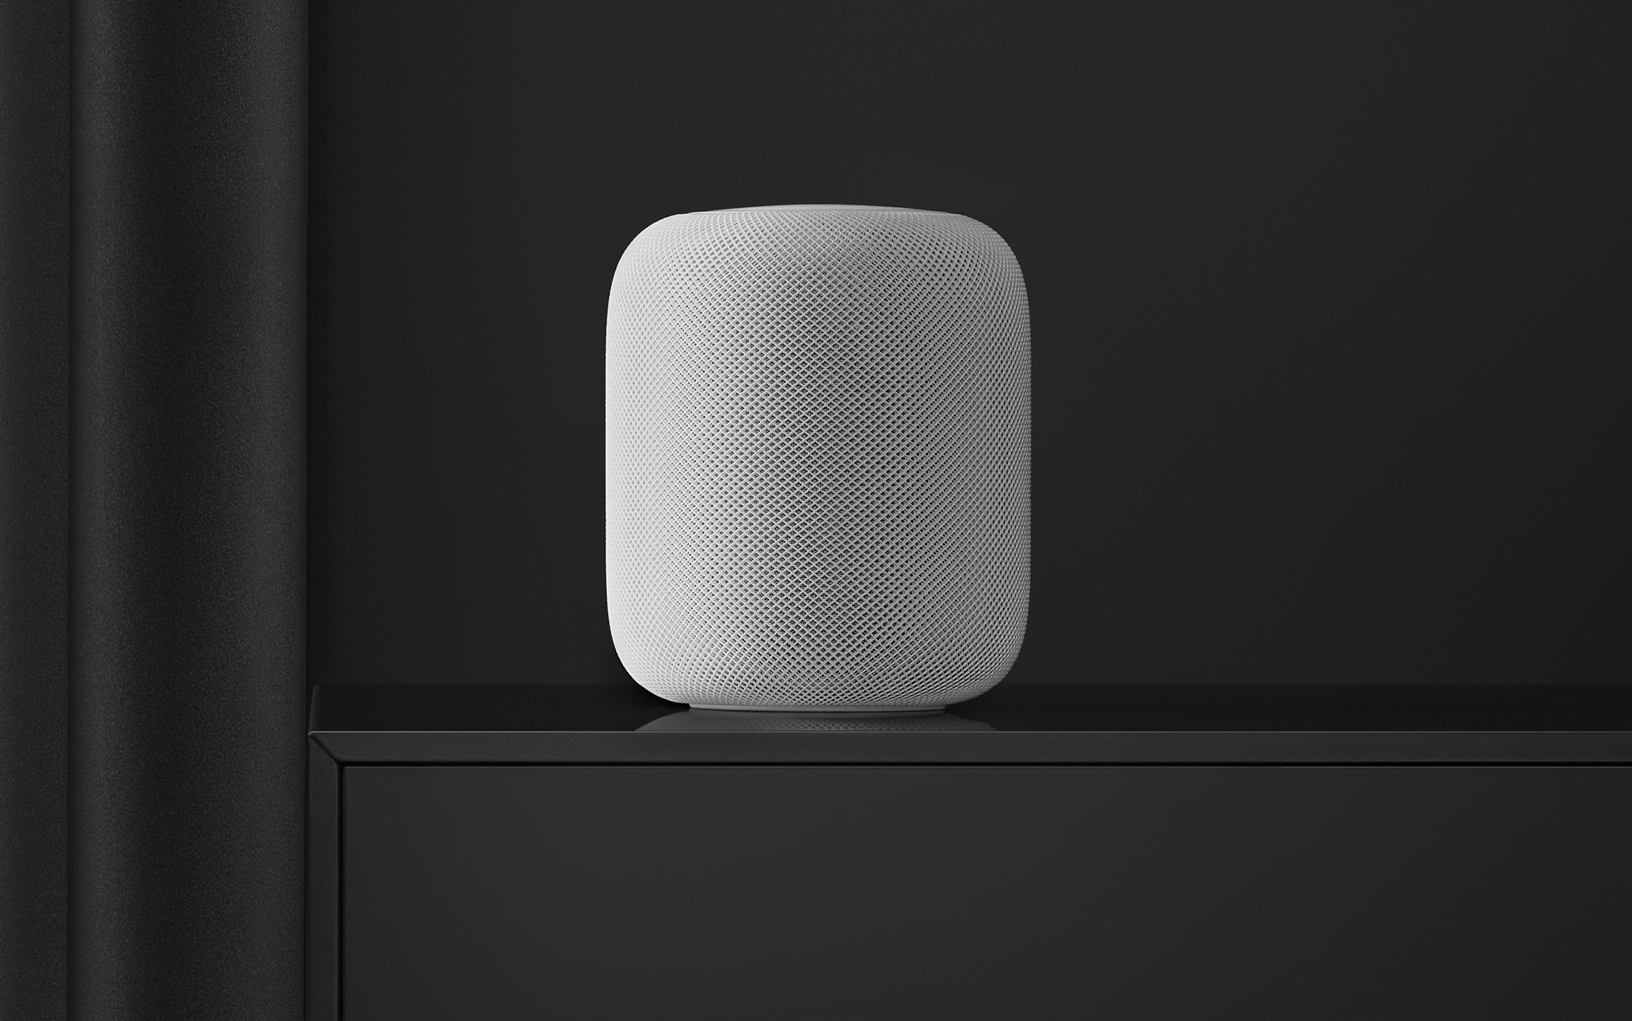 Apple Issues iOS 13.2.1 Update for HomePod to Fix Bricking Problems